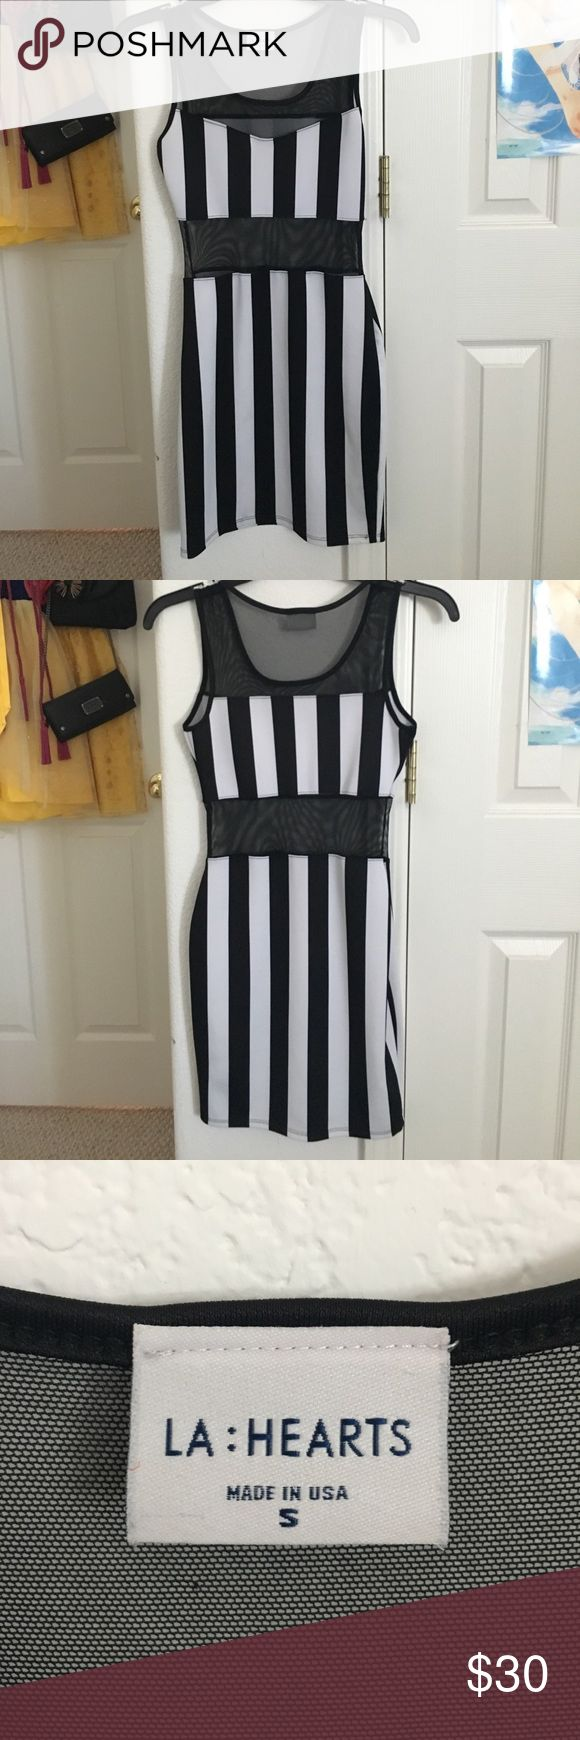 Mesh stripe bodycon dress Wore 2x!! Great for parties and nightclubs! Very tight and gotten to show off curves! Forever 21 Dresses Mini